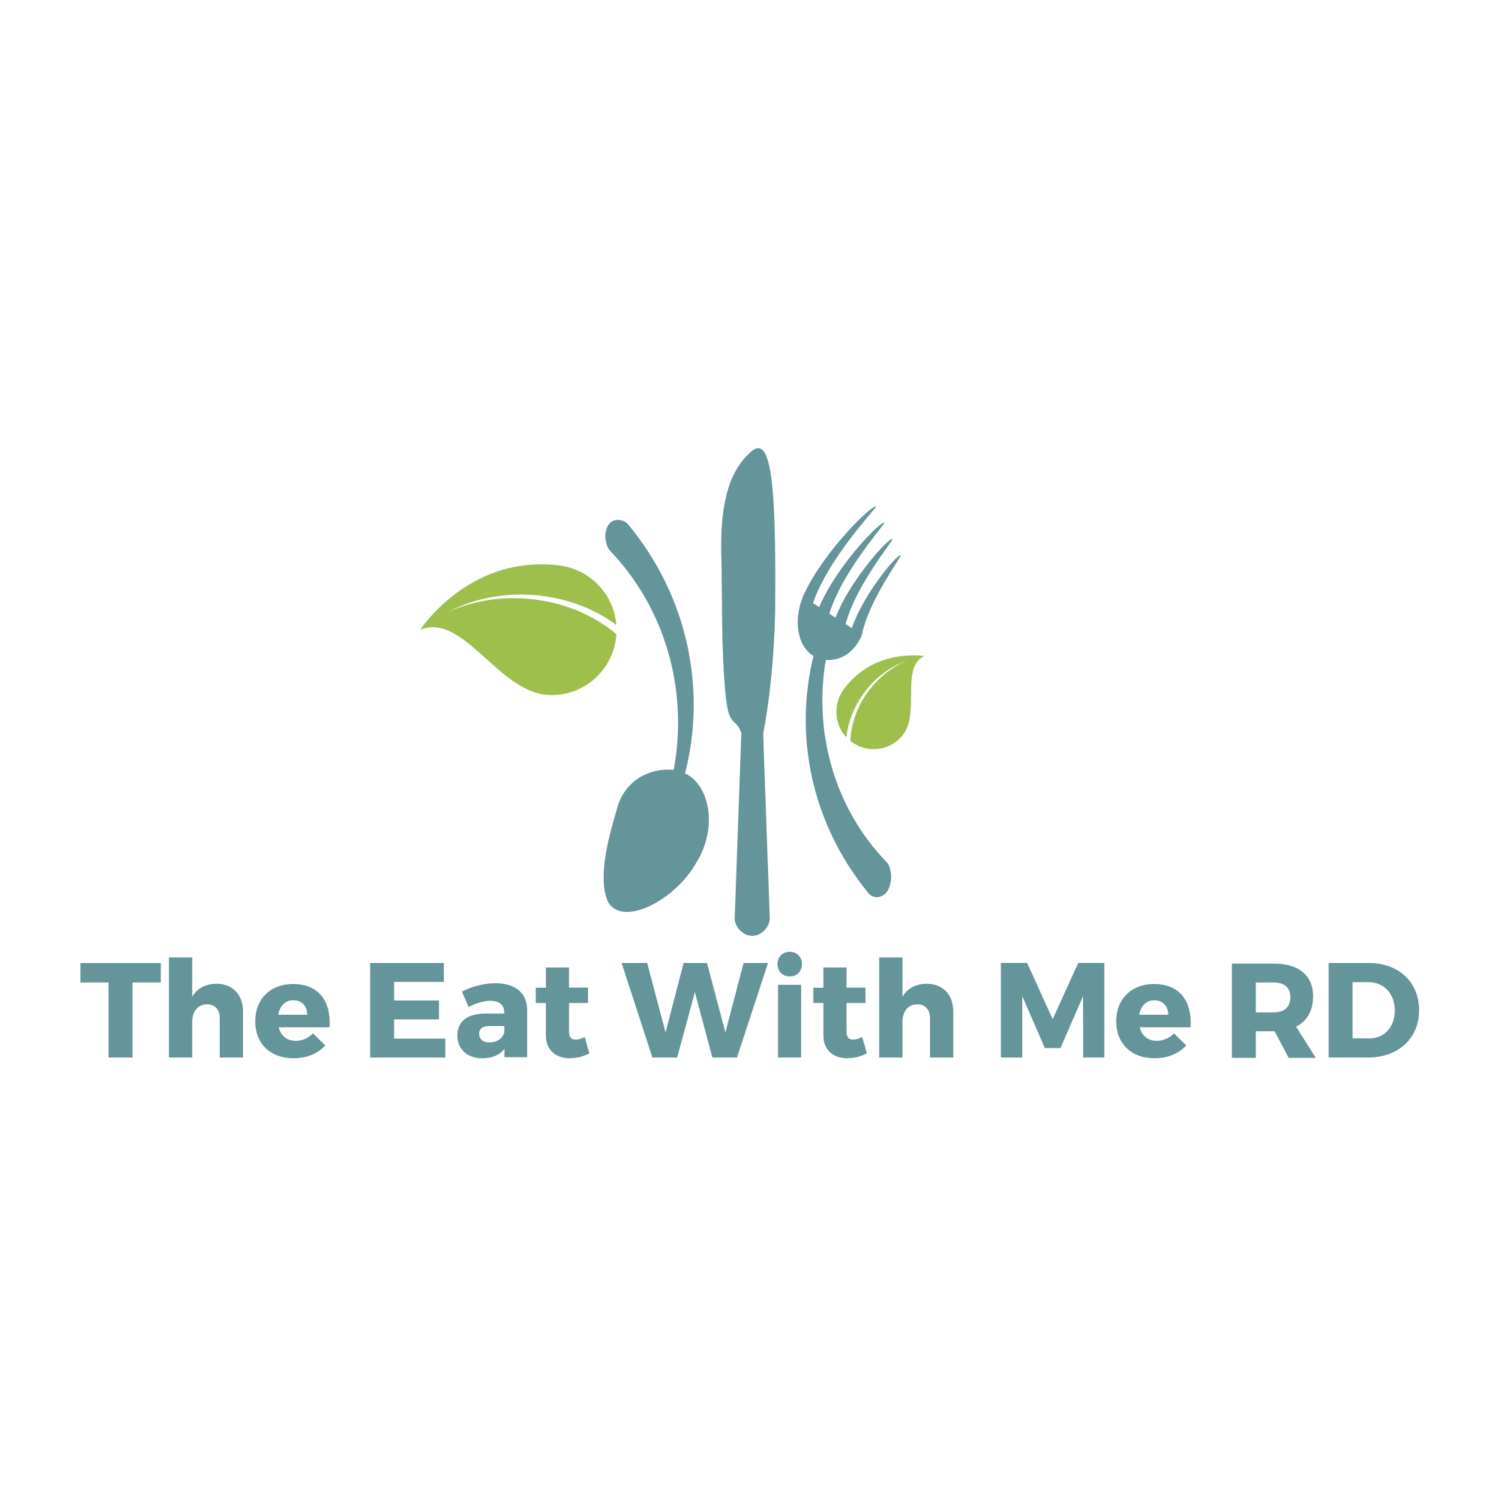 The Eat With Me RD, LLC